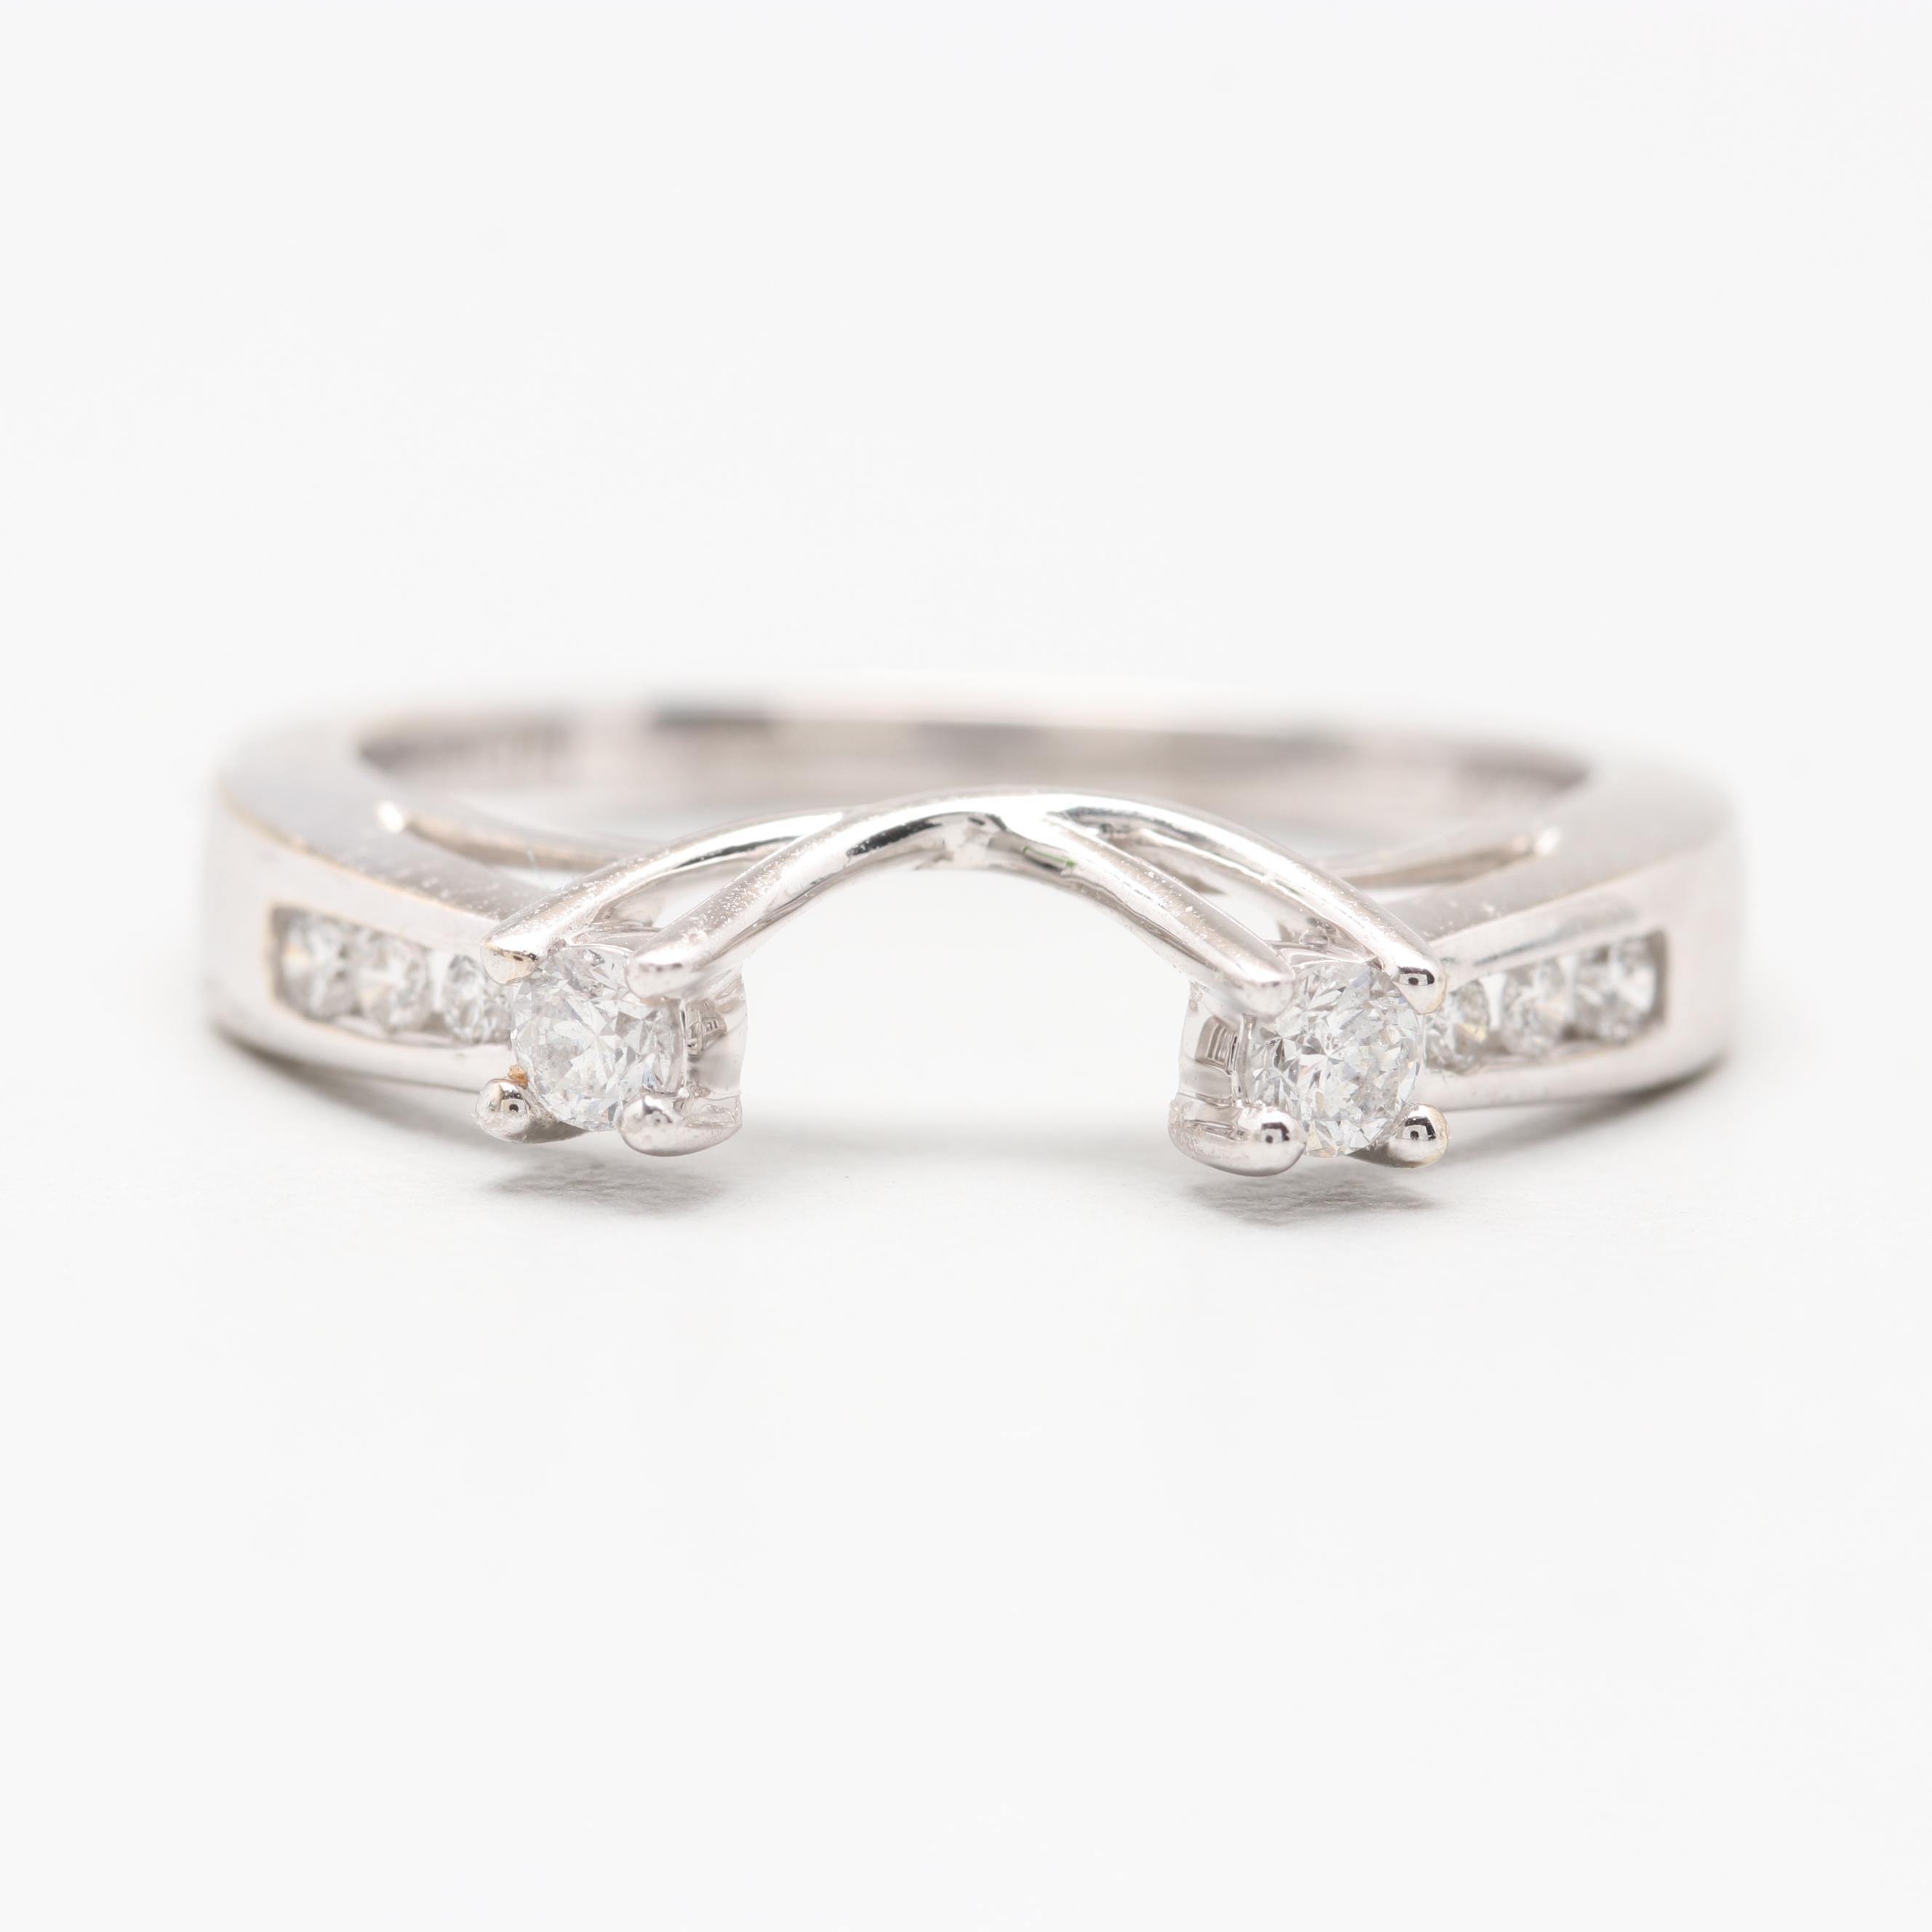 14K White Gold Diamond Enhancer Ring